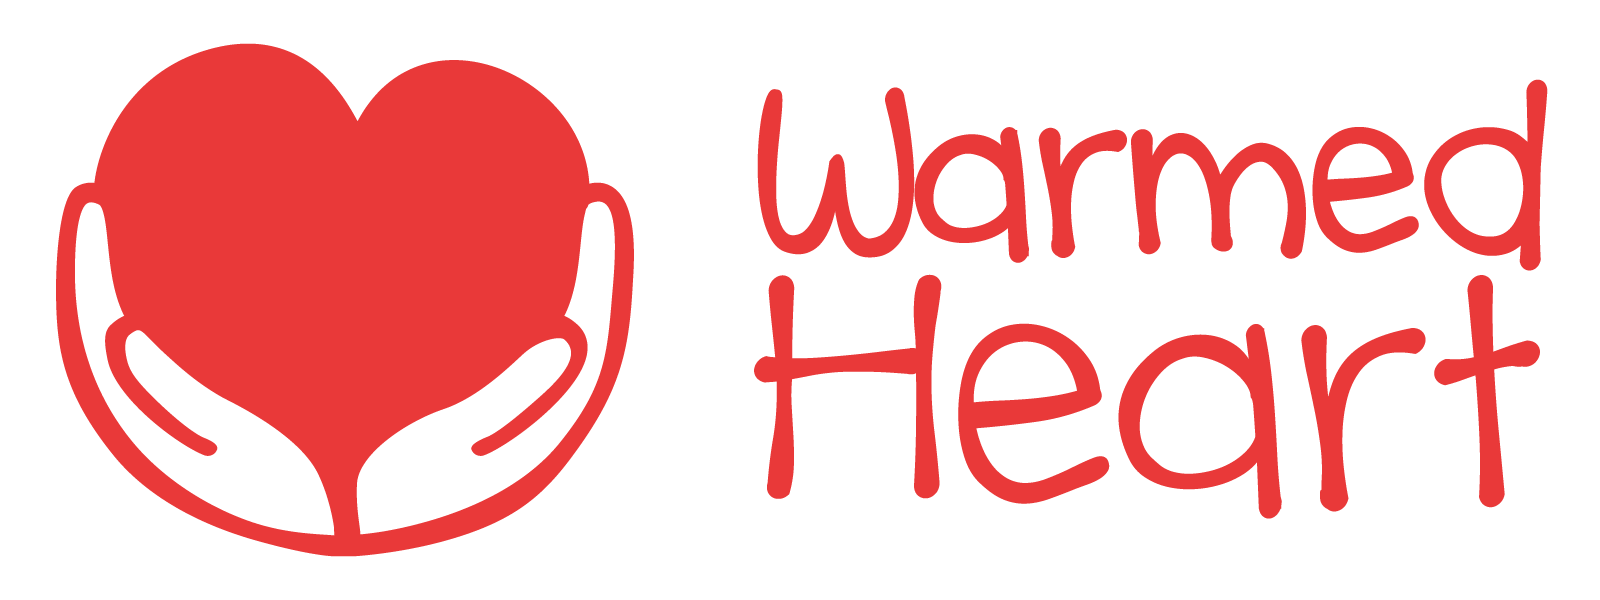 Warmed Heart Charity